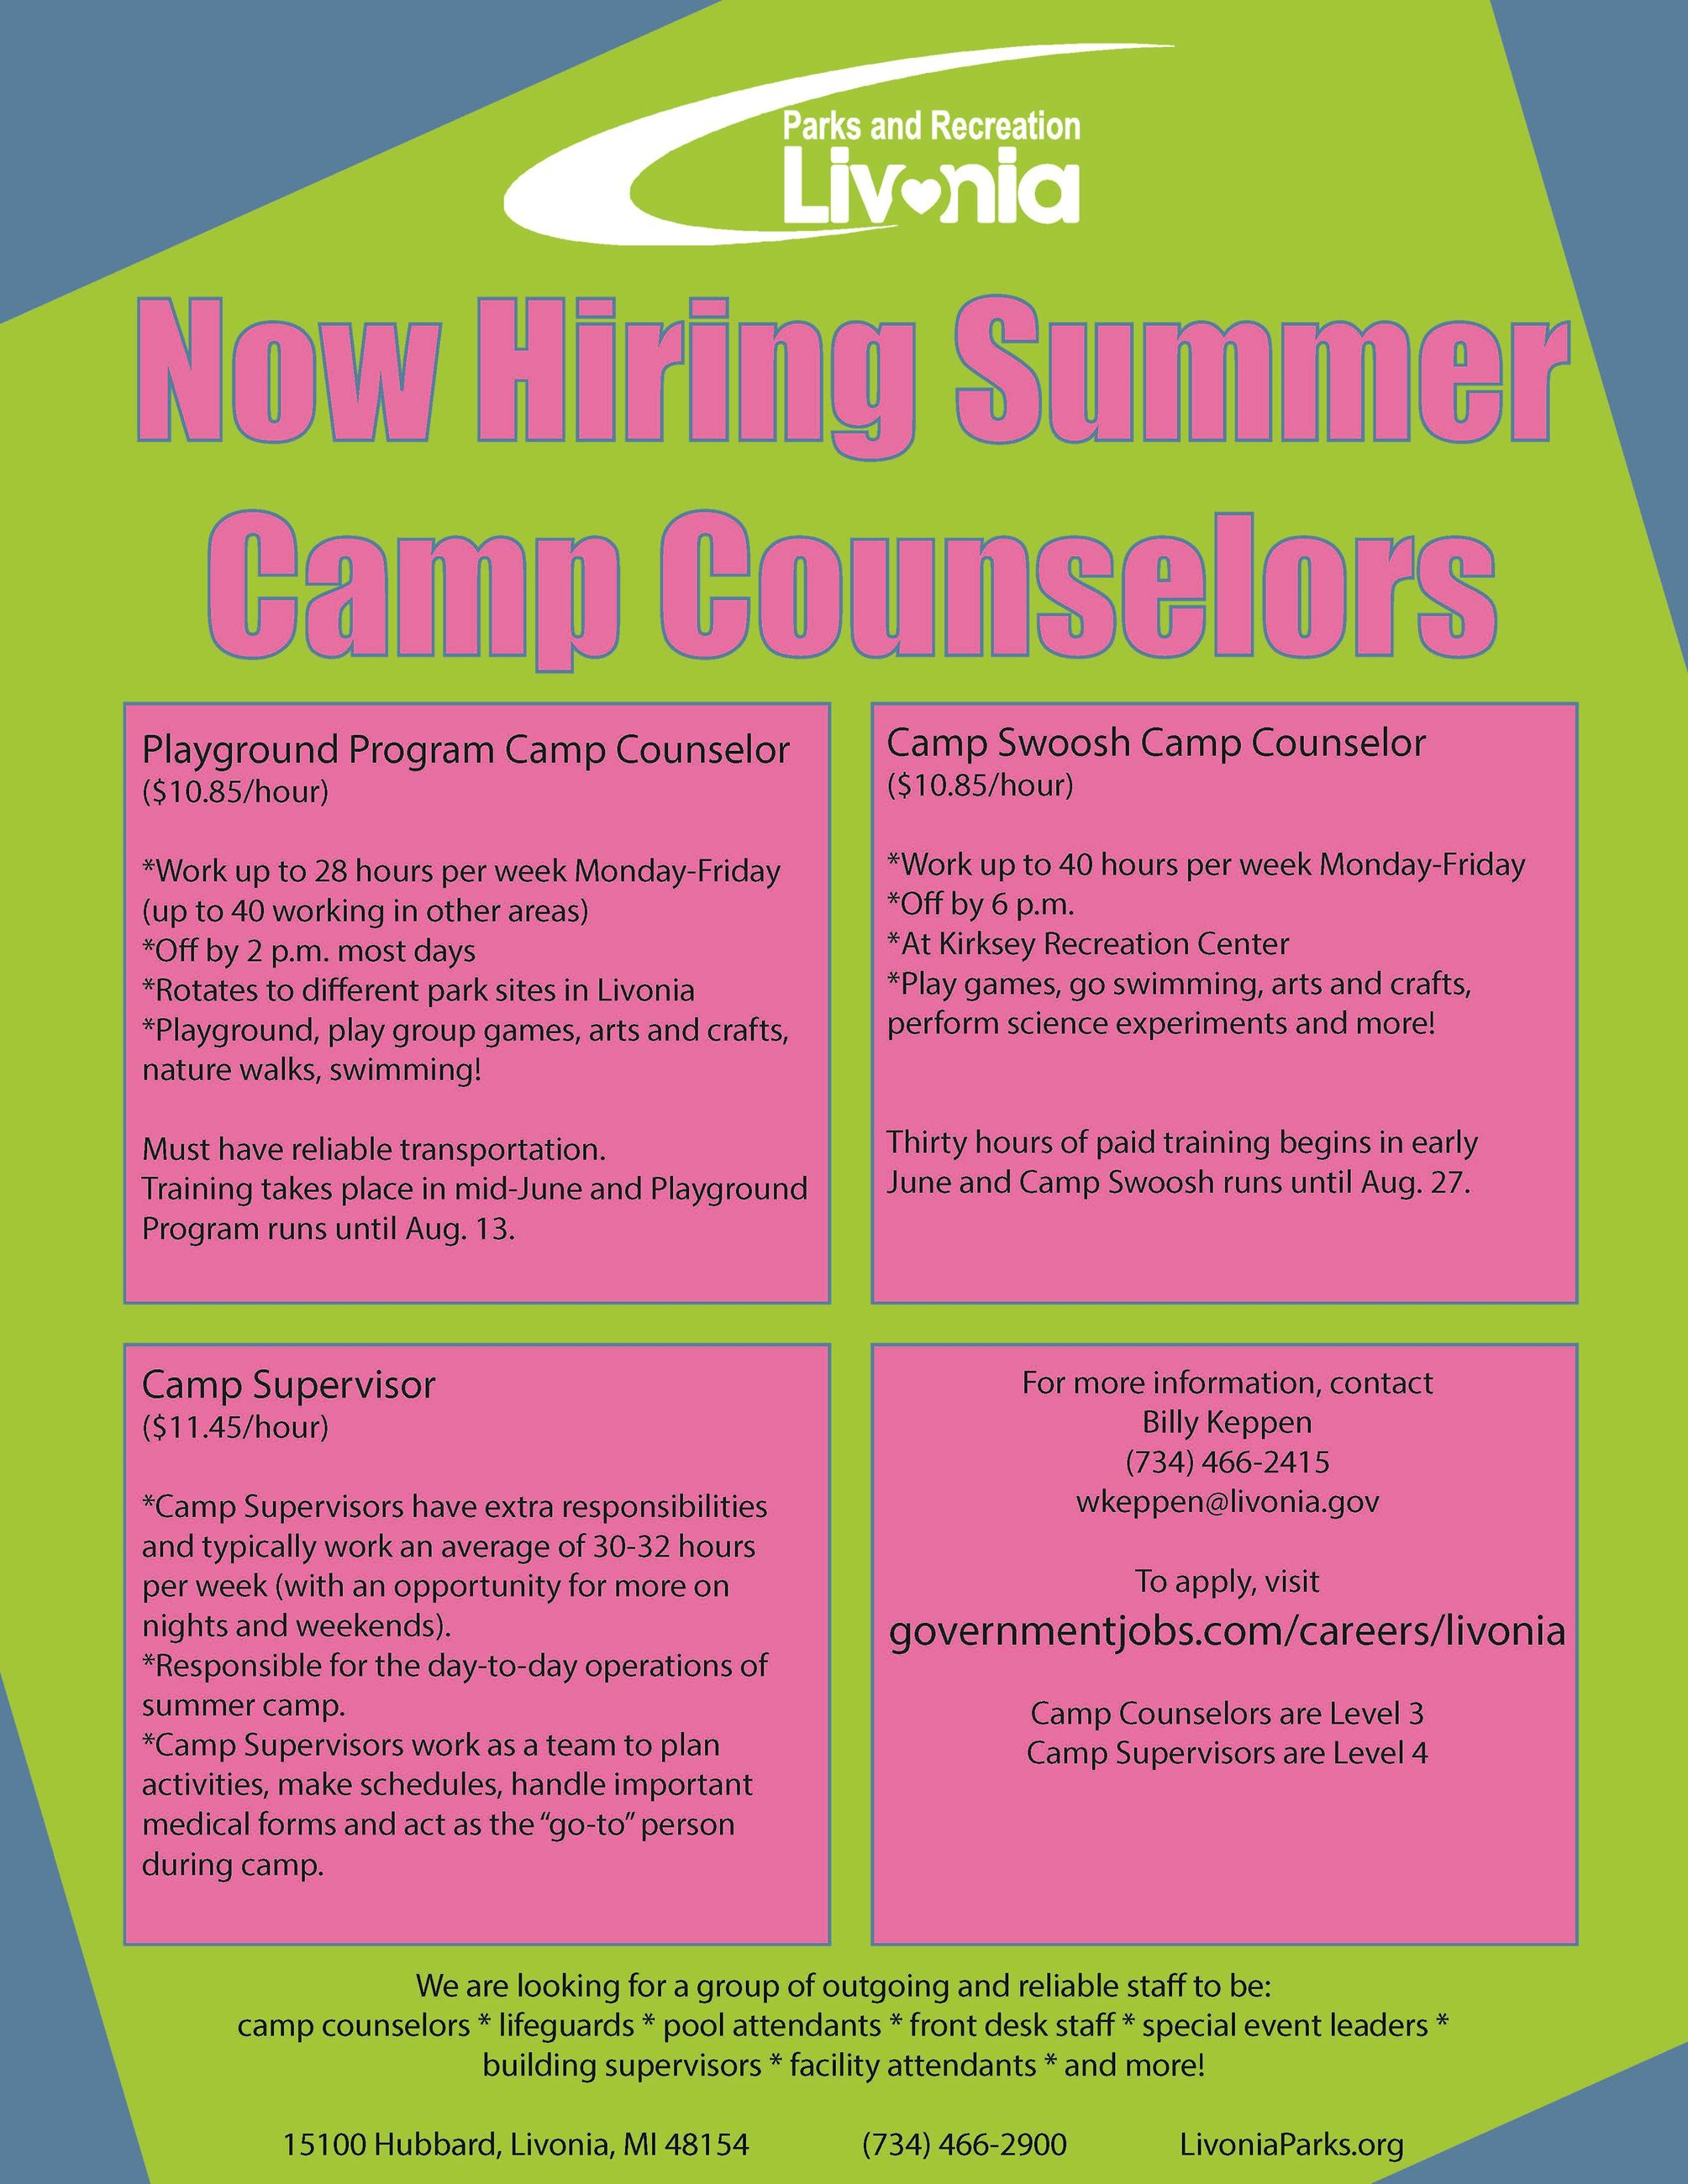 Hiring Camp Counselors Flyer 2021 Opens in new window